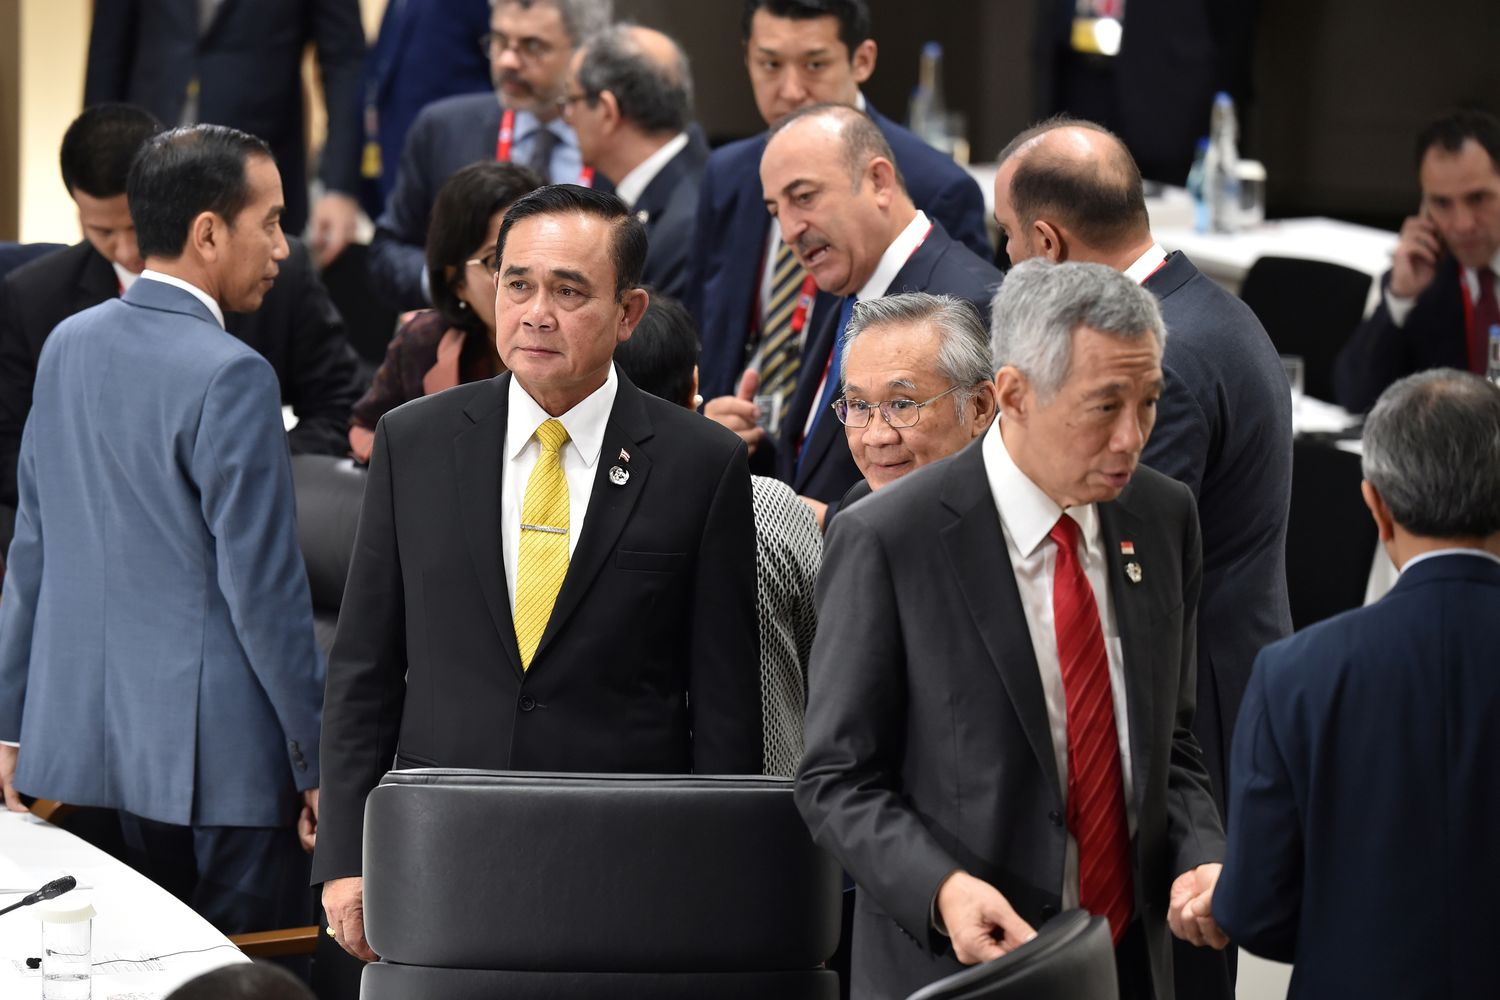 Prime Minister Prayut Chan-o-cha and Foreign Minister Don Pramudwinai (third from left) wait for the start of a session on women's workforce participation and ageing societies at the G20 Summit in Osaka on Saturday. Also attending the session were Indonesian President Joko Widodo (left) and Singapore Prime Minister Lee Hsien Loong (second from right). (Kazuhiro Nogi/Pool via Reuters)